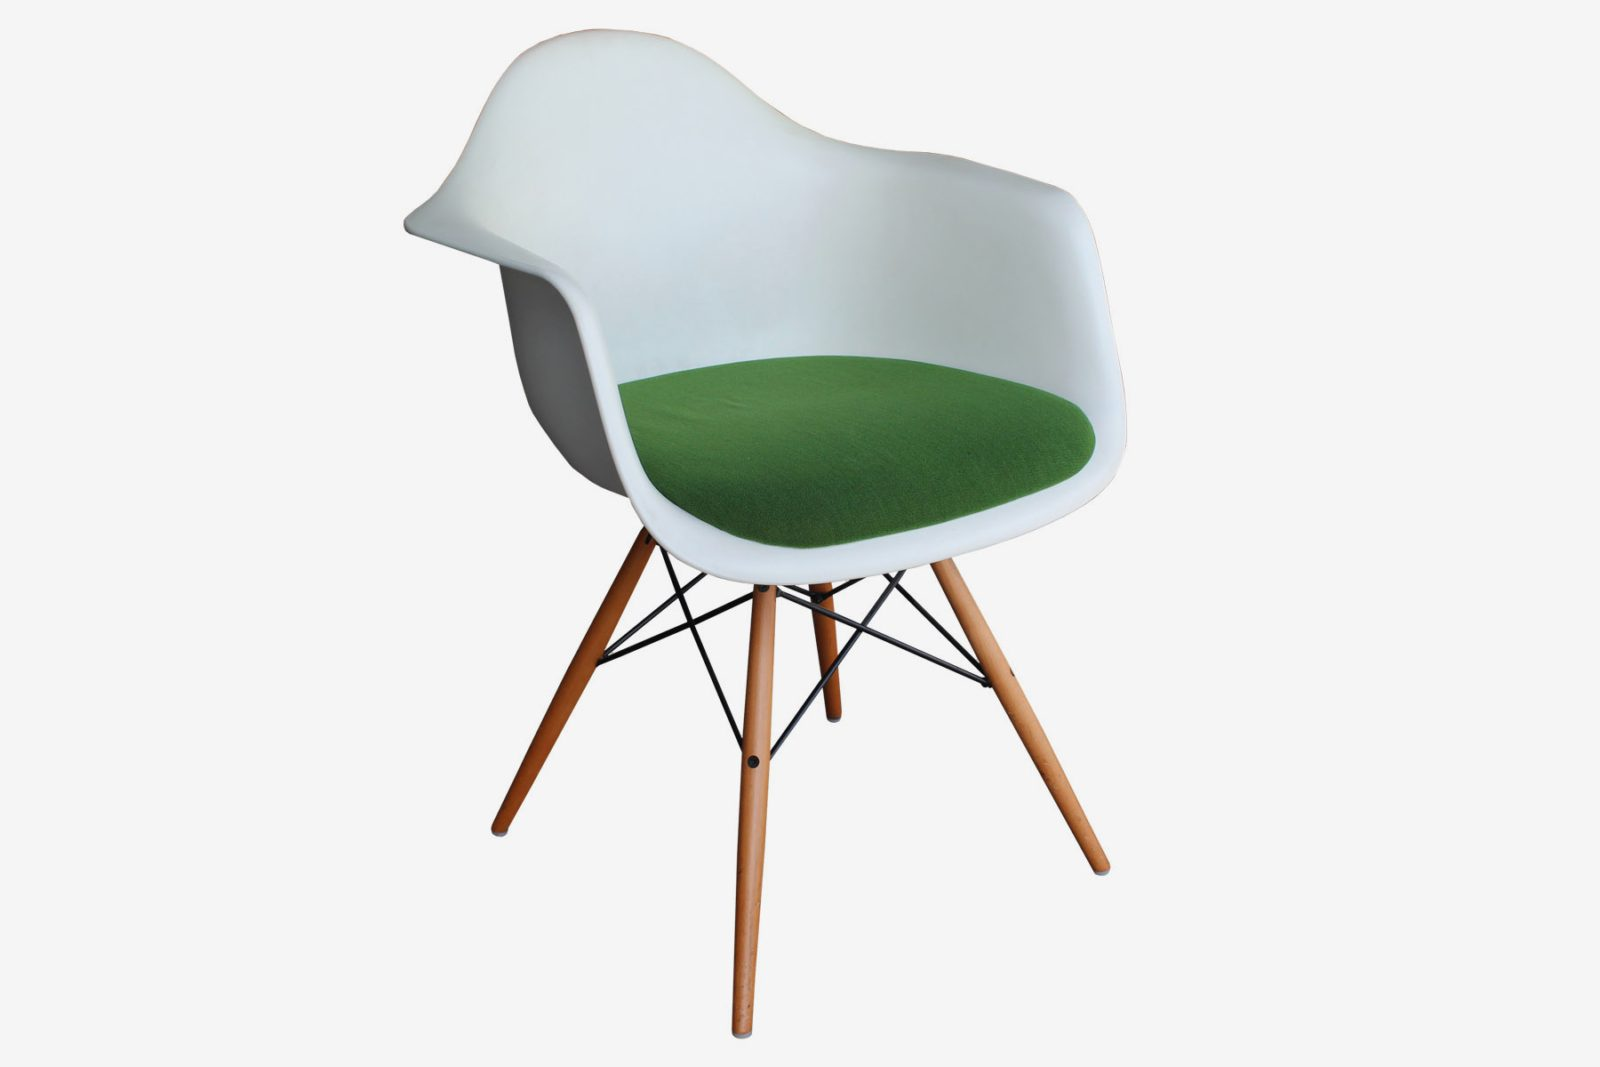 Vitra eames amazing vitra eames plastic chair pacc with for Vitra eames plastic armchair replica